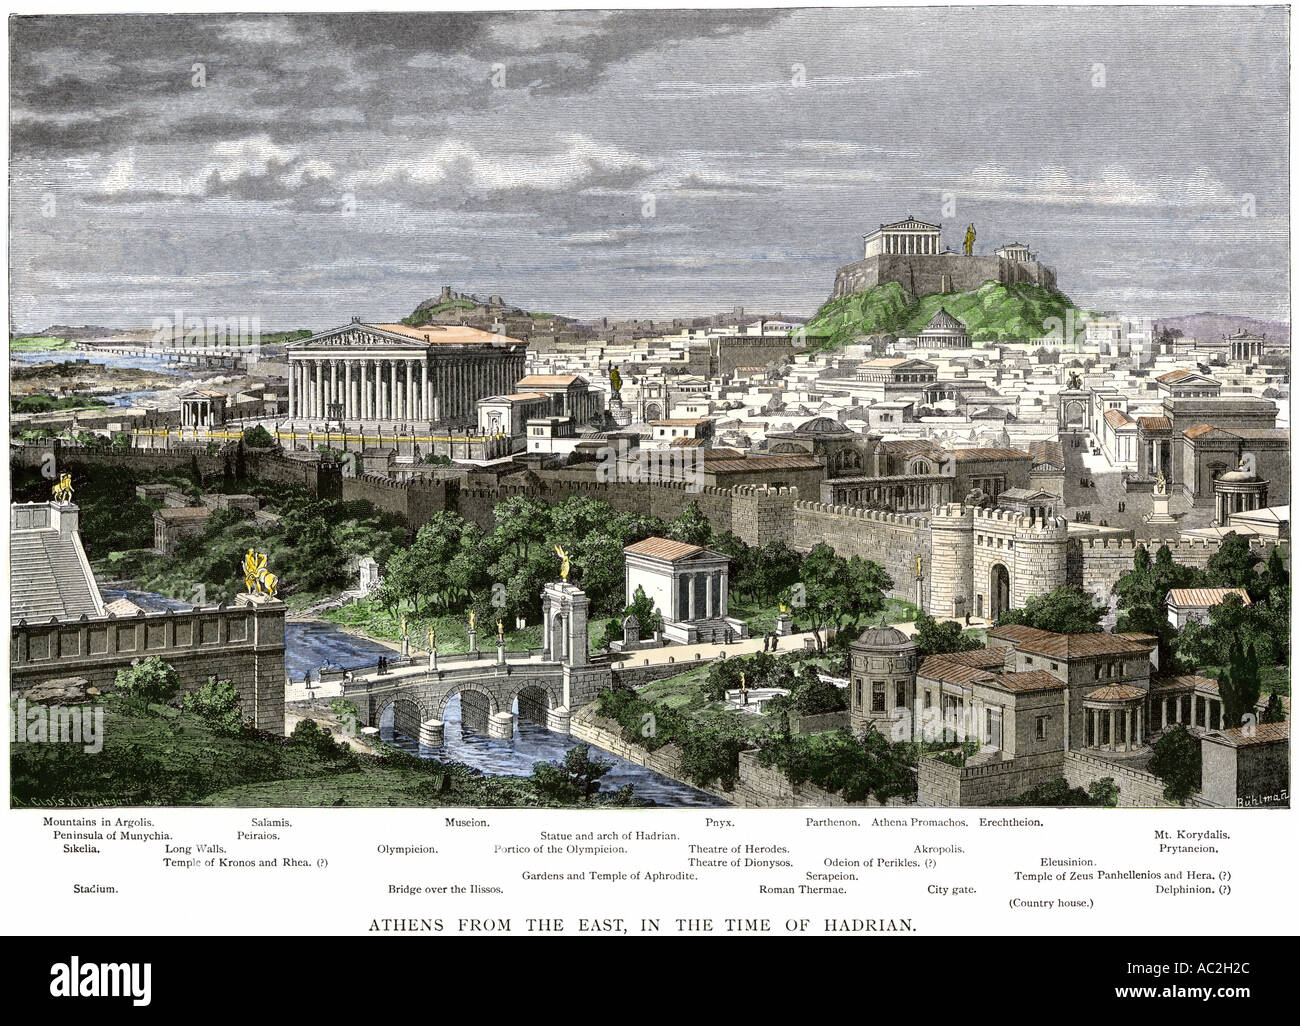 Athens viewed from the east in the time of Hadrian. Hand-colored woodcut - Stock Image